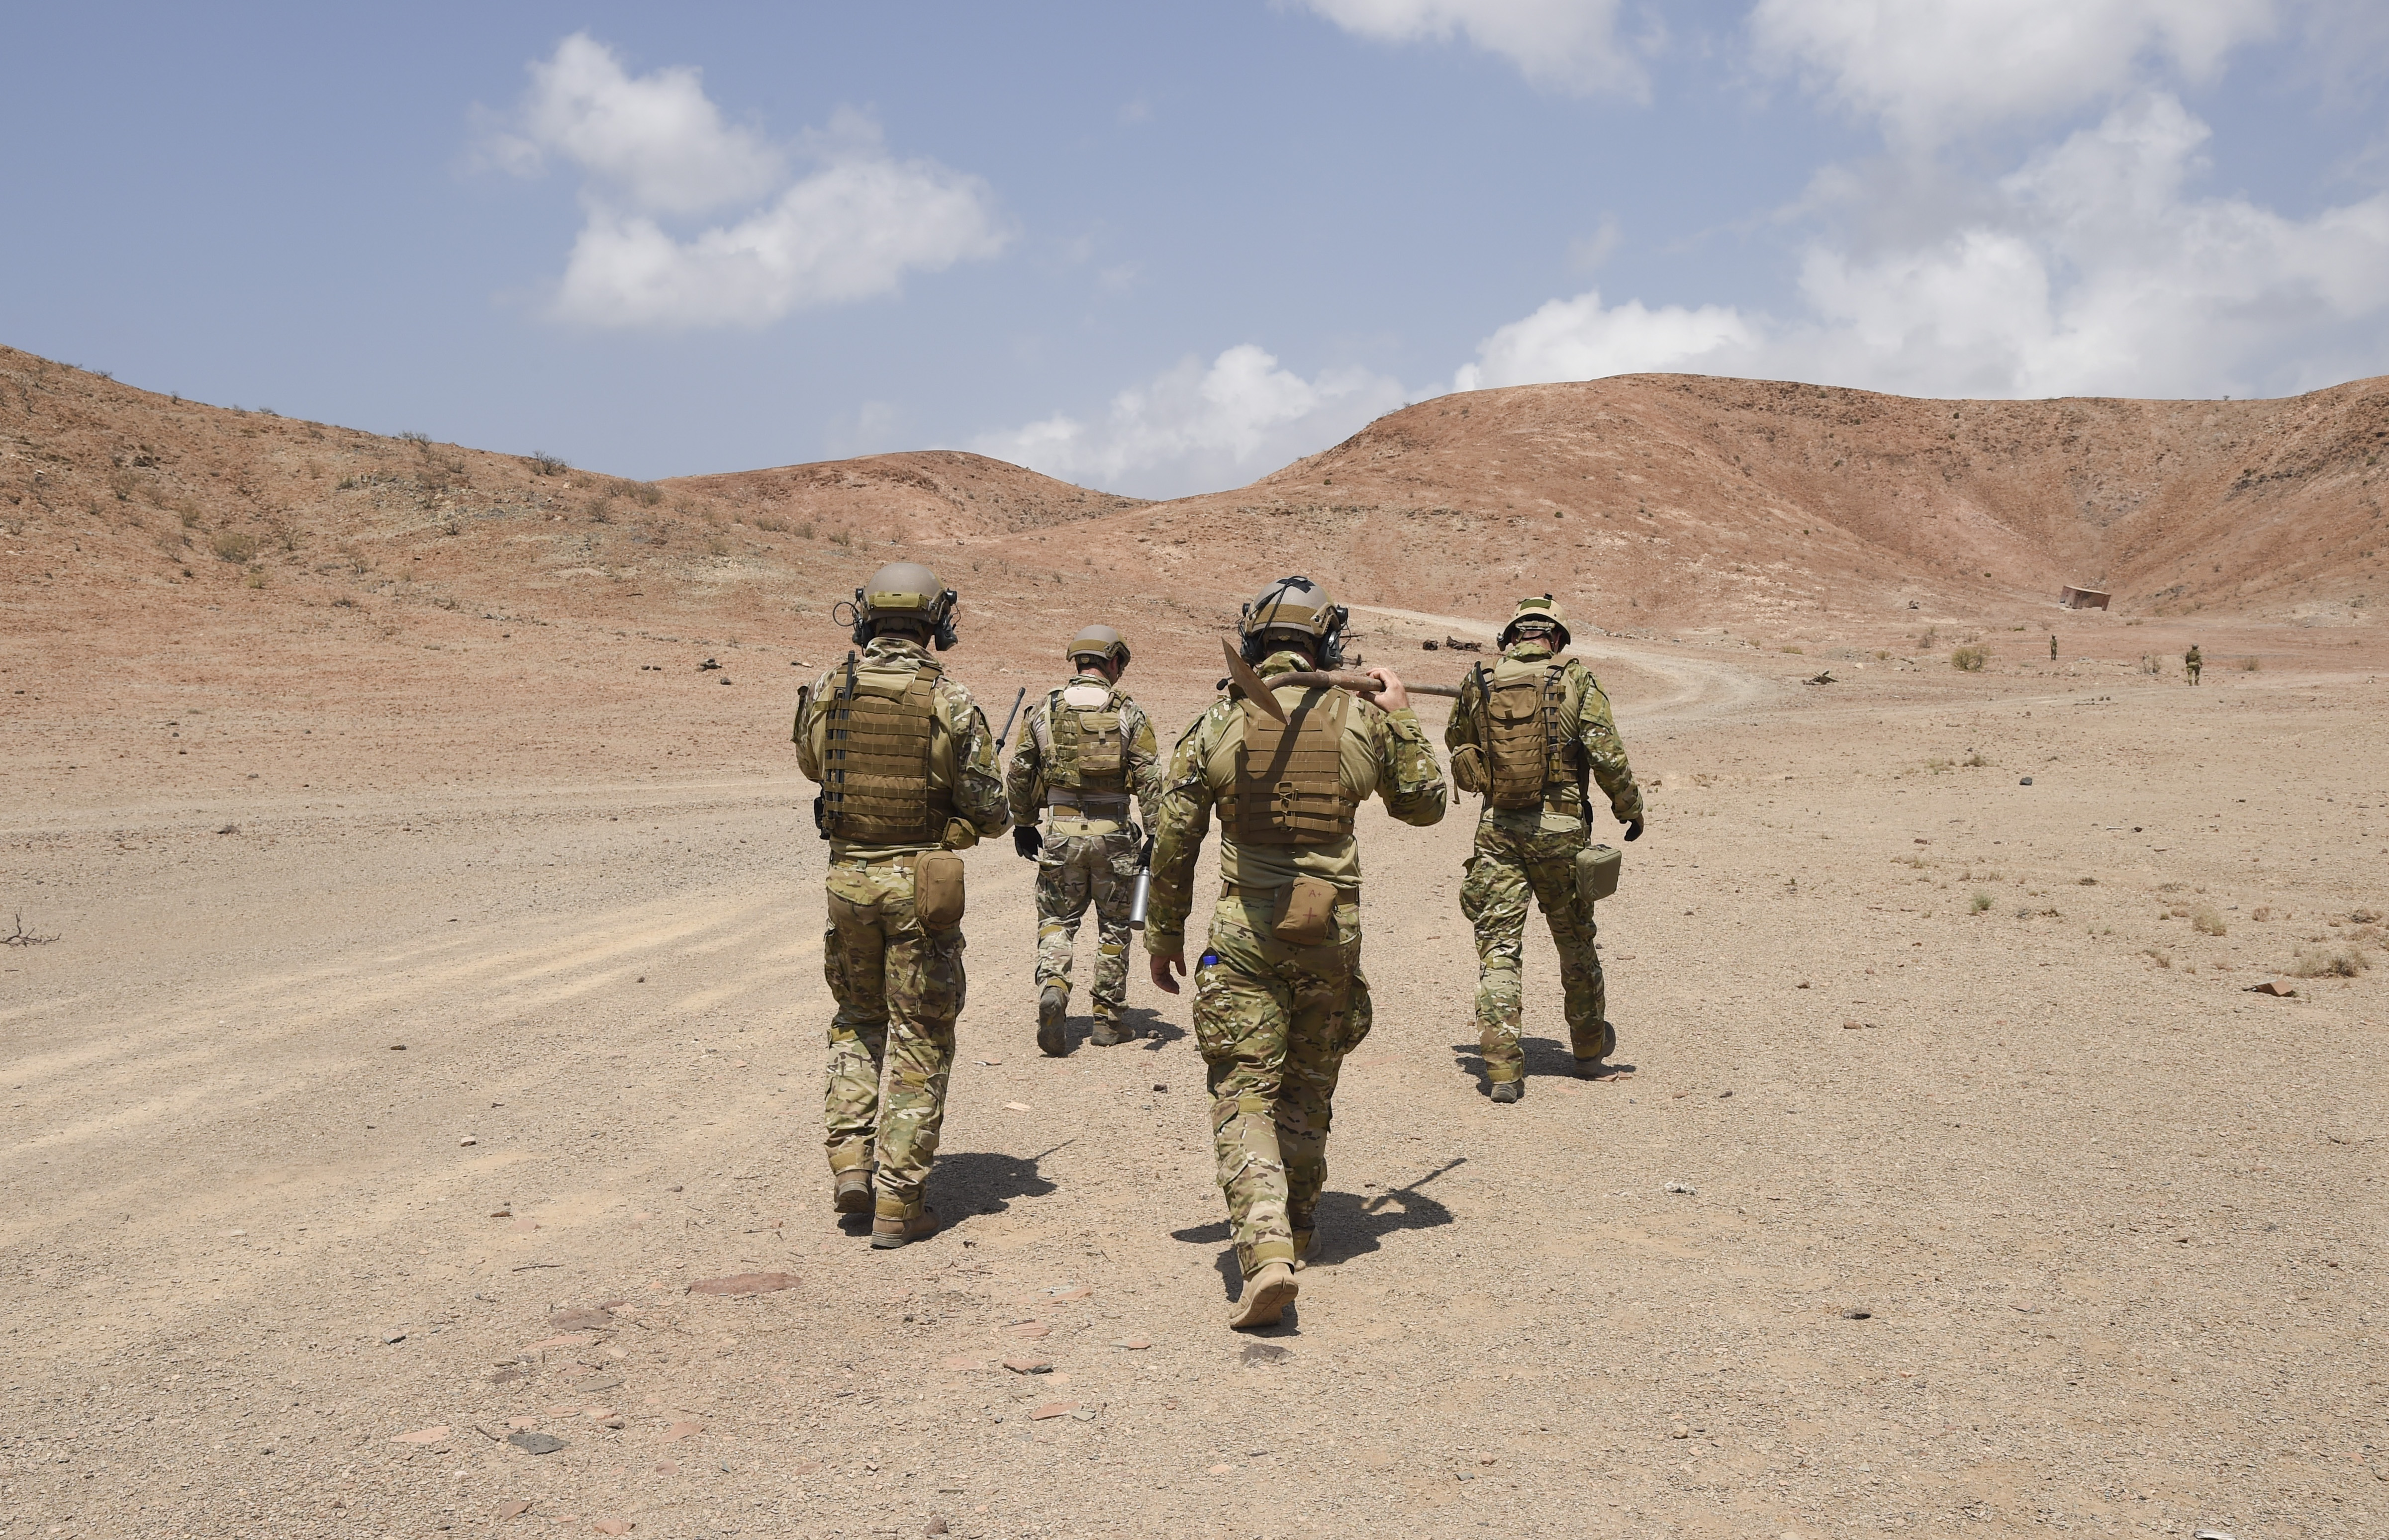 U.S. Navy Sailors with Explosive Ordnance Disposal (EOD) Mobile Unit 6, Task Force Sparta, proceed downrange to a safe area for the remote removal and identification of impacted ordnance, Oct. 22, 2016, in Djibouti. During this operation, Navy and French EOD personnel worked bilaterally to safely clear their respective areas of unexploded ordnance. (U.S. Air Force photo by Staff Sgt. Penny Snoozy)